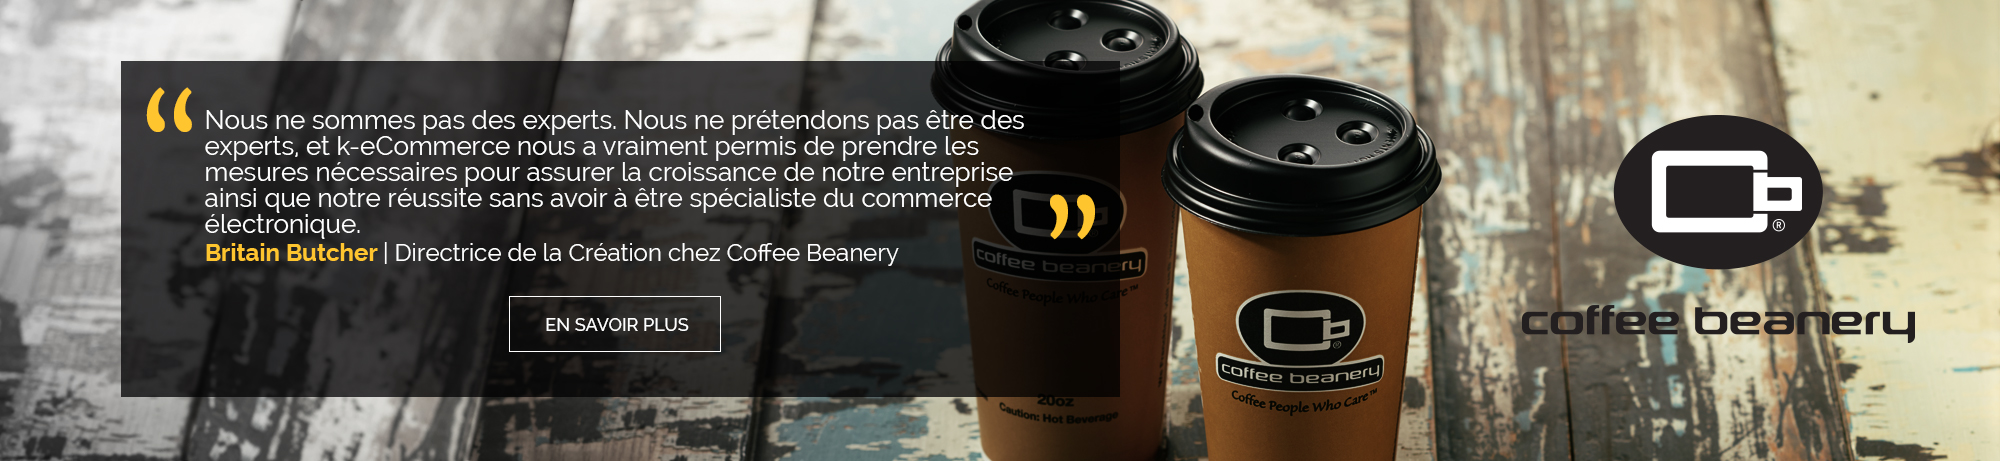 coffee_beanery_case_study_banner_fr